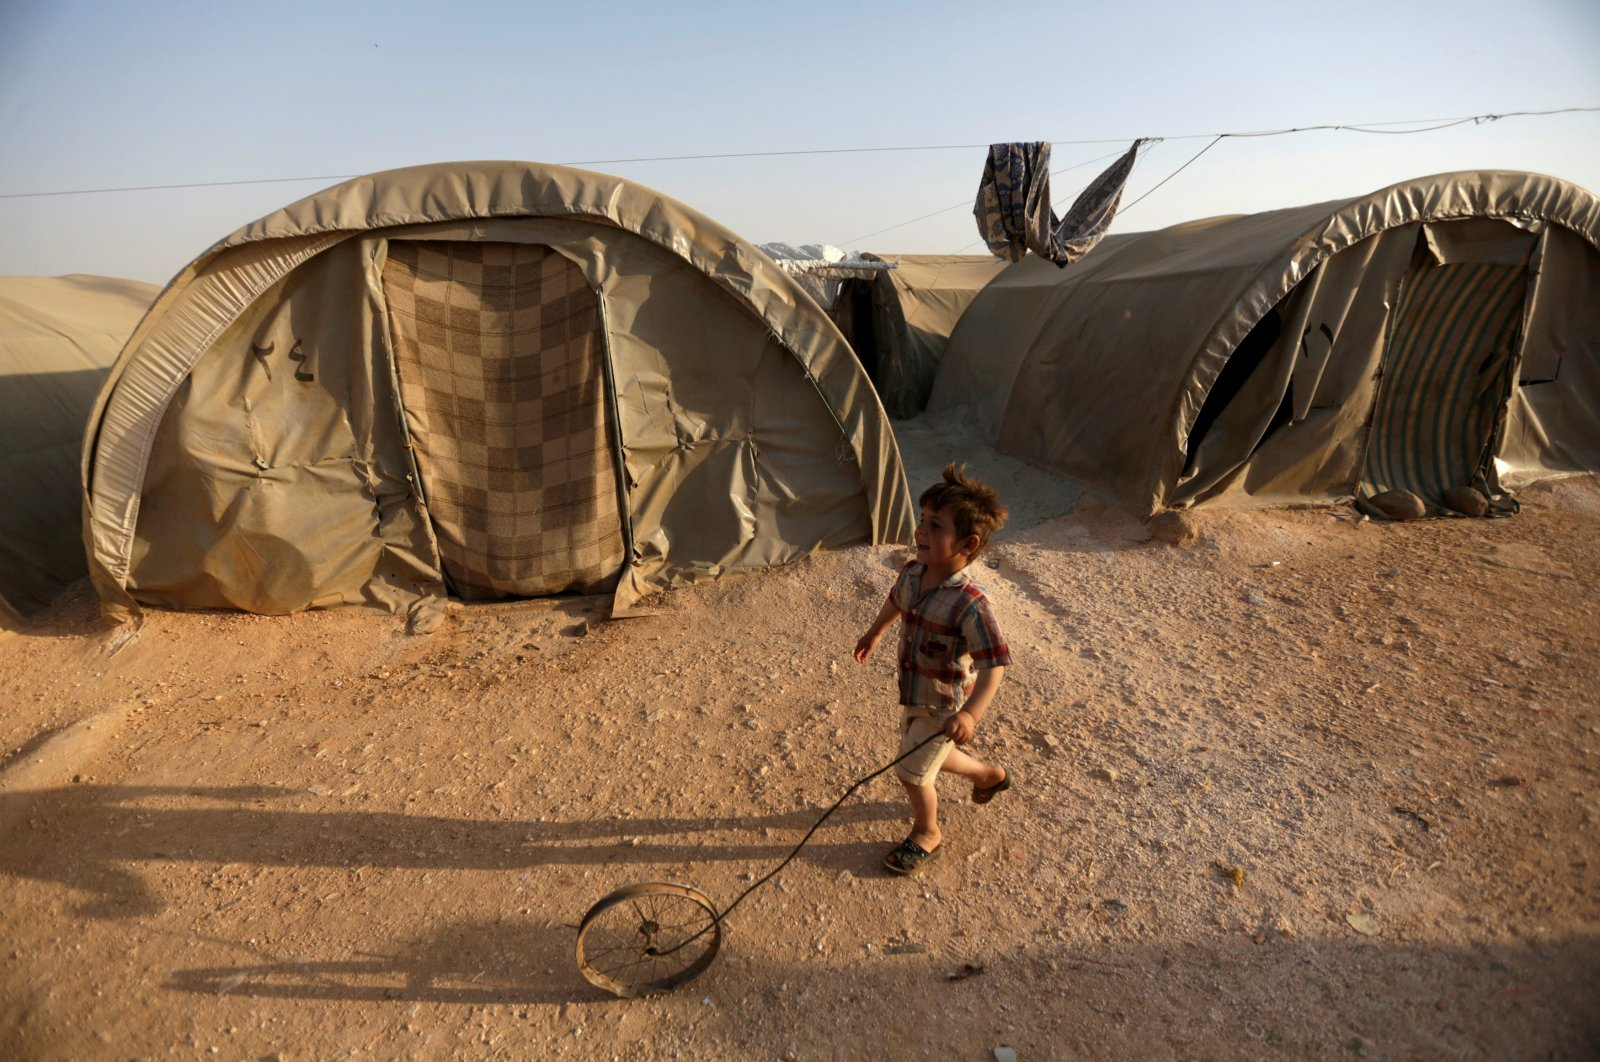 An internally displaced Syrian boy plays with a wheel in Jrzinaz Camp in the southern part of Idlib, Syria, June 21, 2016. (Reuters Photo)